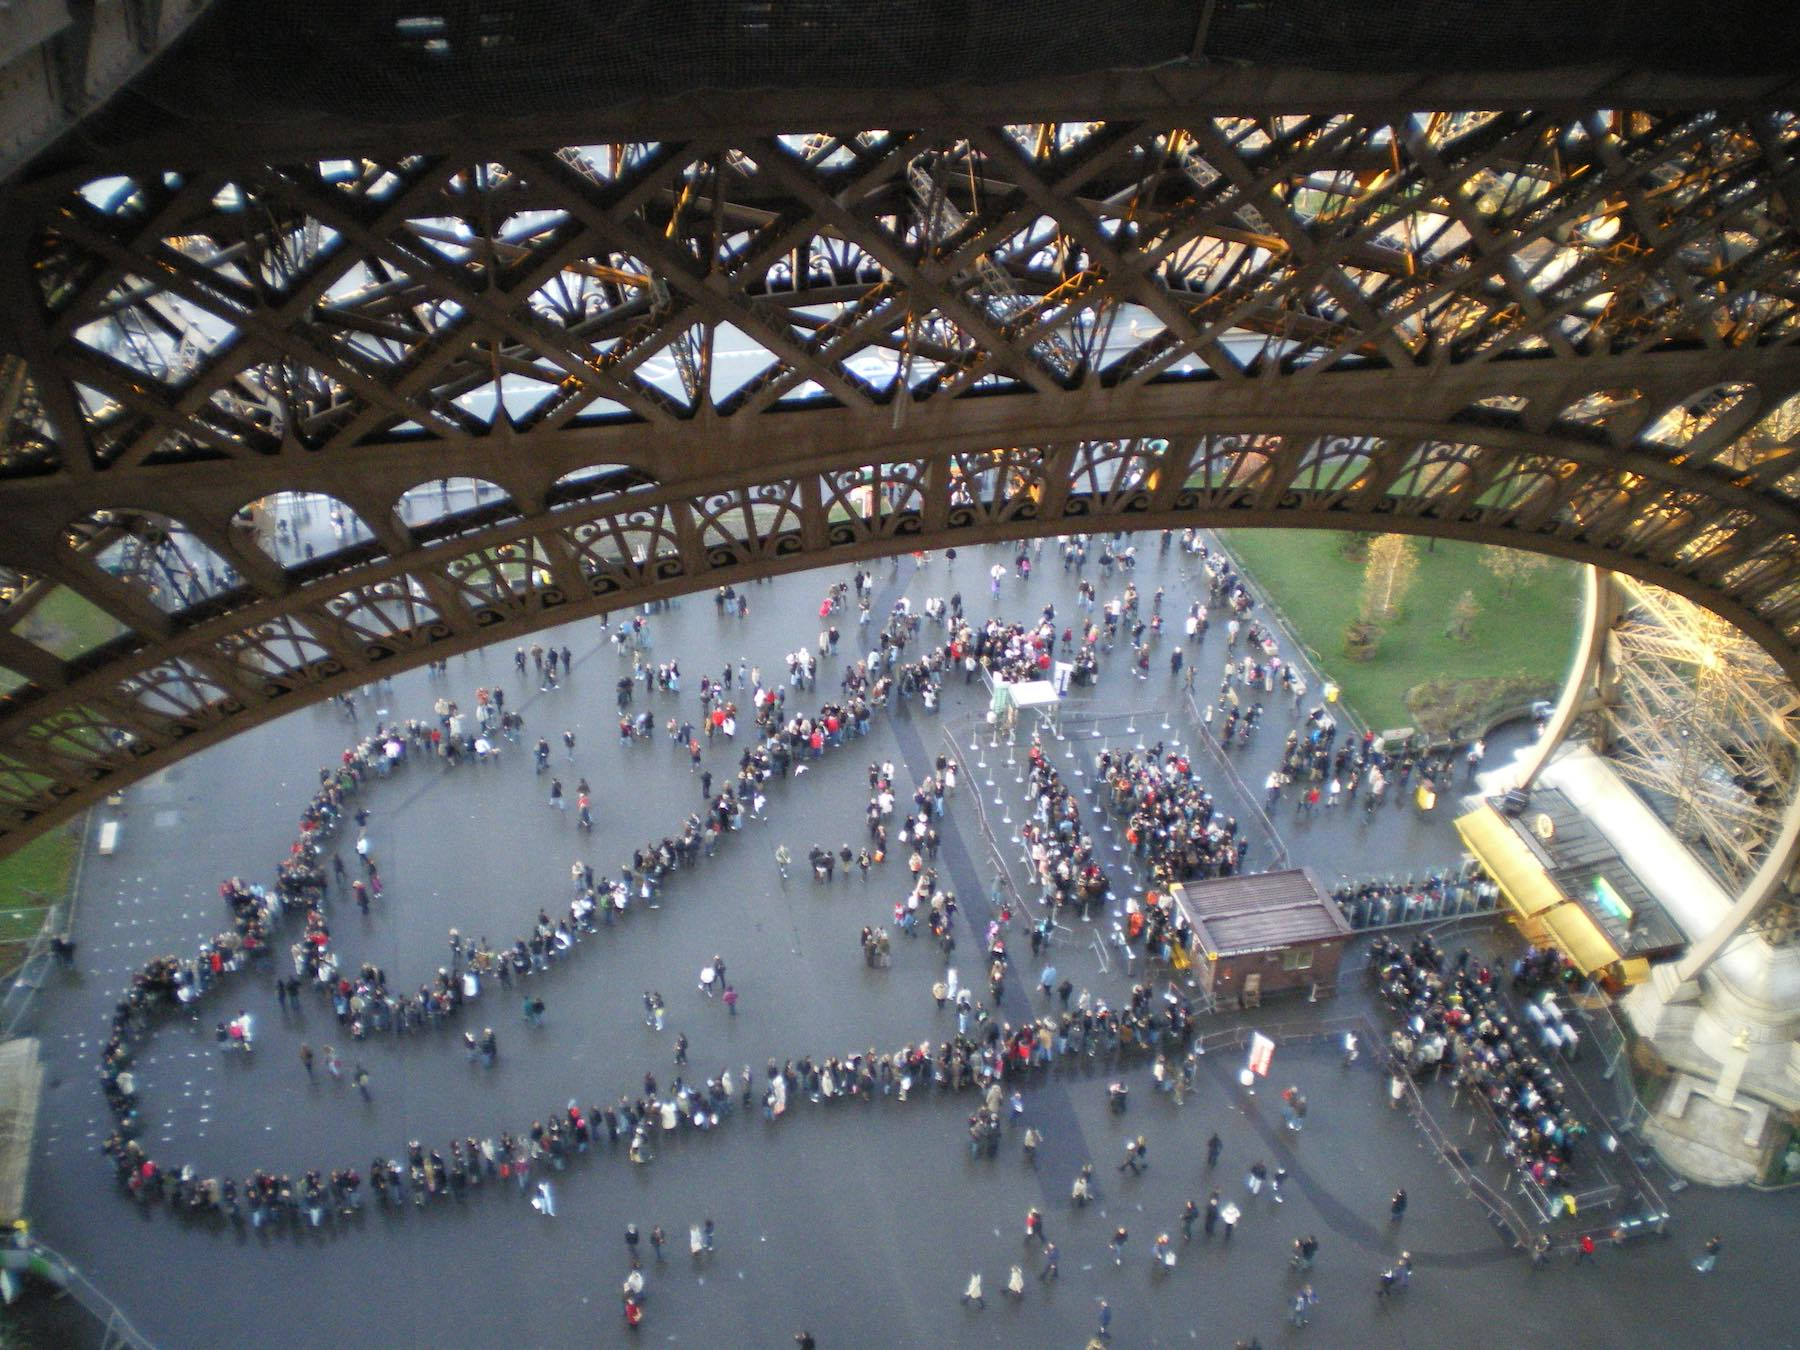 People queuing to get up the Eiffel Tower